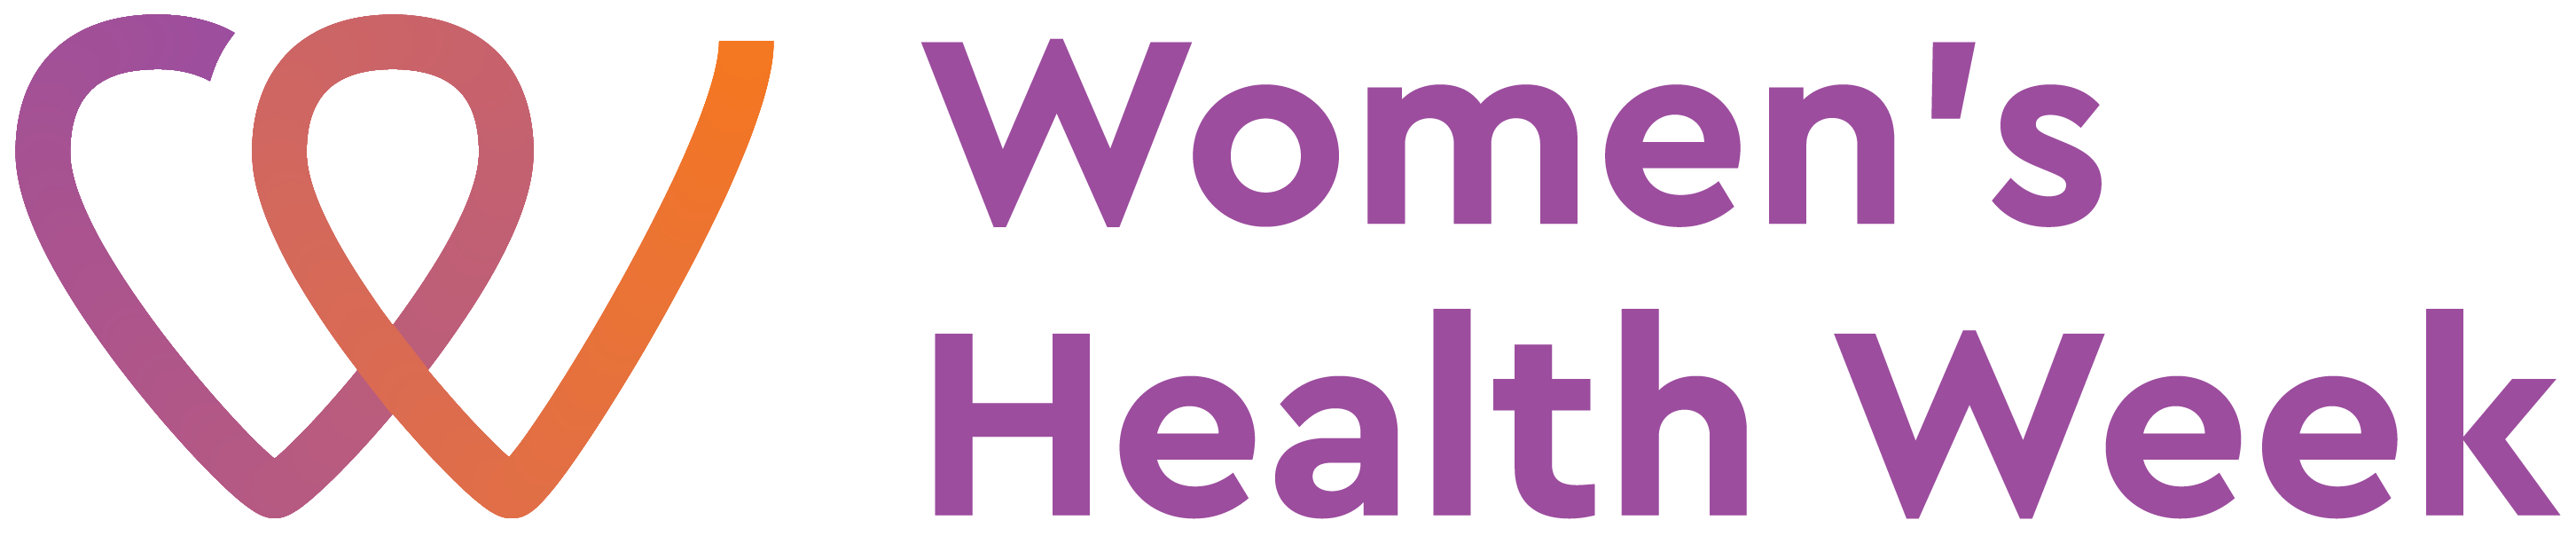 Women's Health Week launches powerful new brand identity via Clemenger BBDO, Melbourne